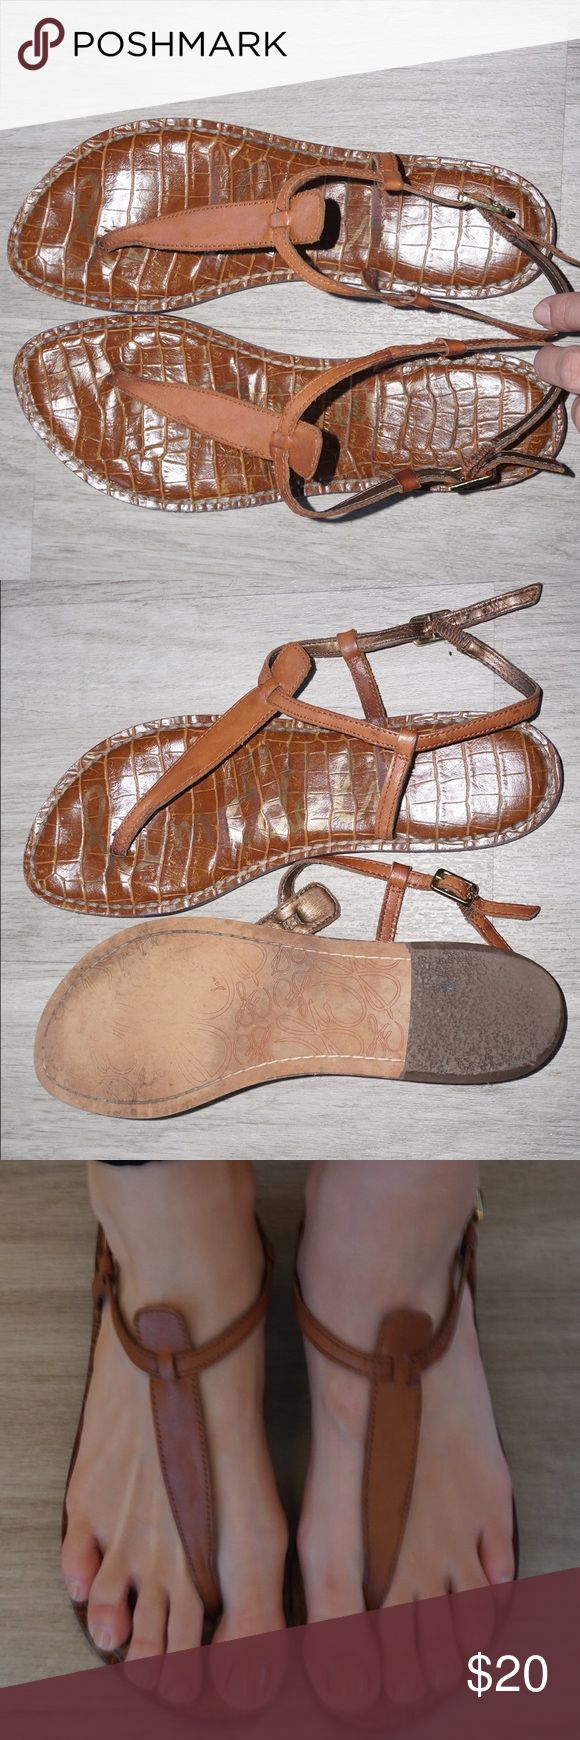 Sam Edelman Gigi Sandals Sam Edelman Gigi Sandals  Color: Brown  Size: 8.5 Condition: Good; The sole is slightly bent but shoe feels fine when worn. Sam Edelman Shoes Sandals